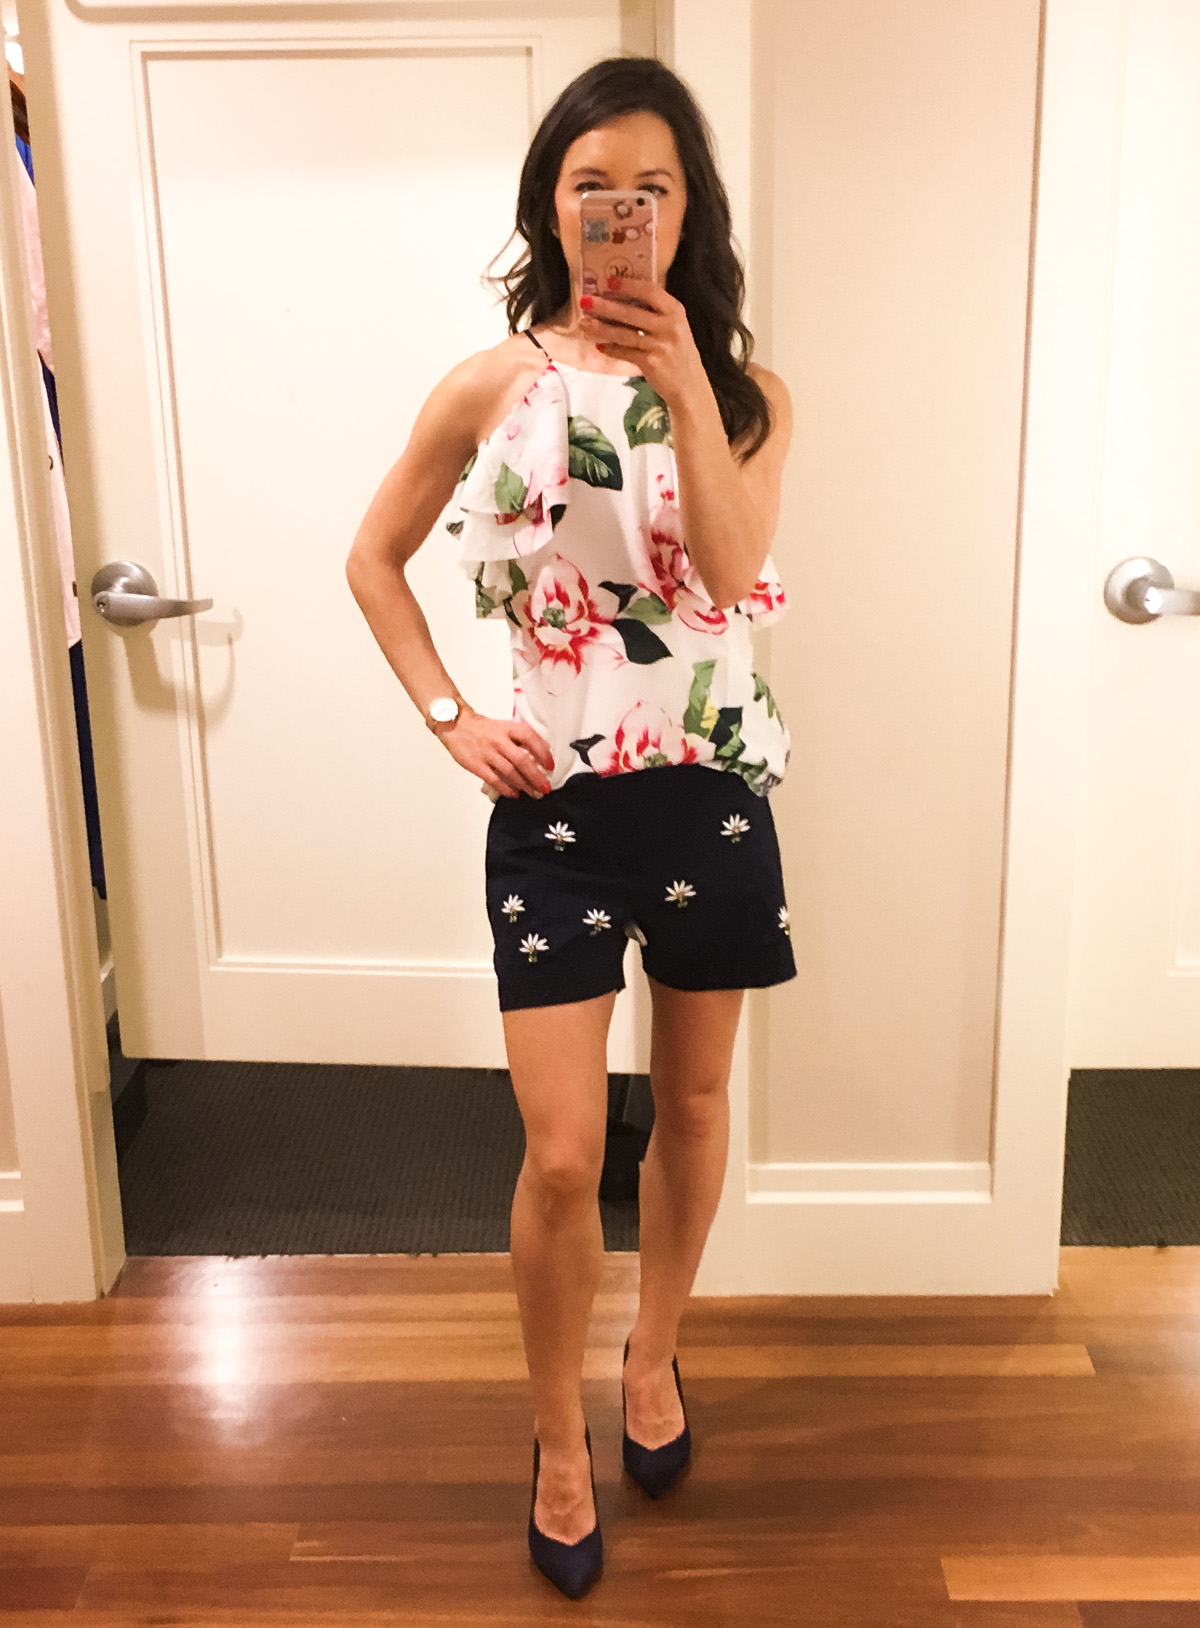 Best Banana Republic summer collection 2017 outfit inspiration   Petite fashion & style   Floral print   embellishment shorts   One shoulder ruffle dress   Tanner Market Pasadena CA   Ryan shorts